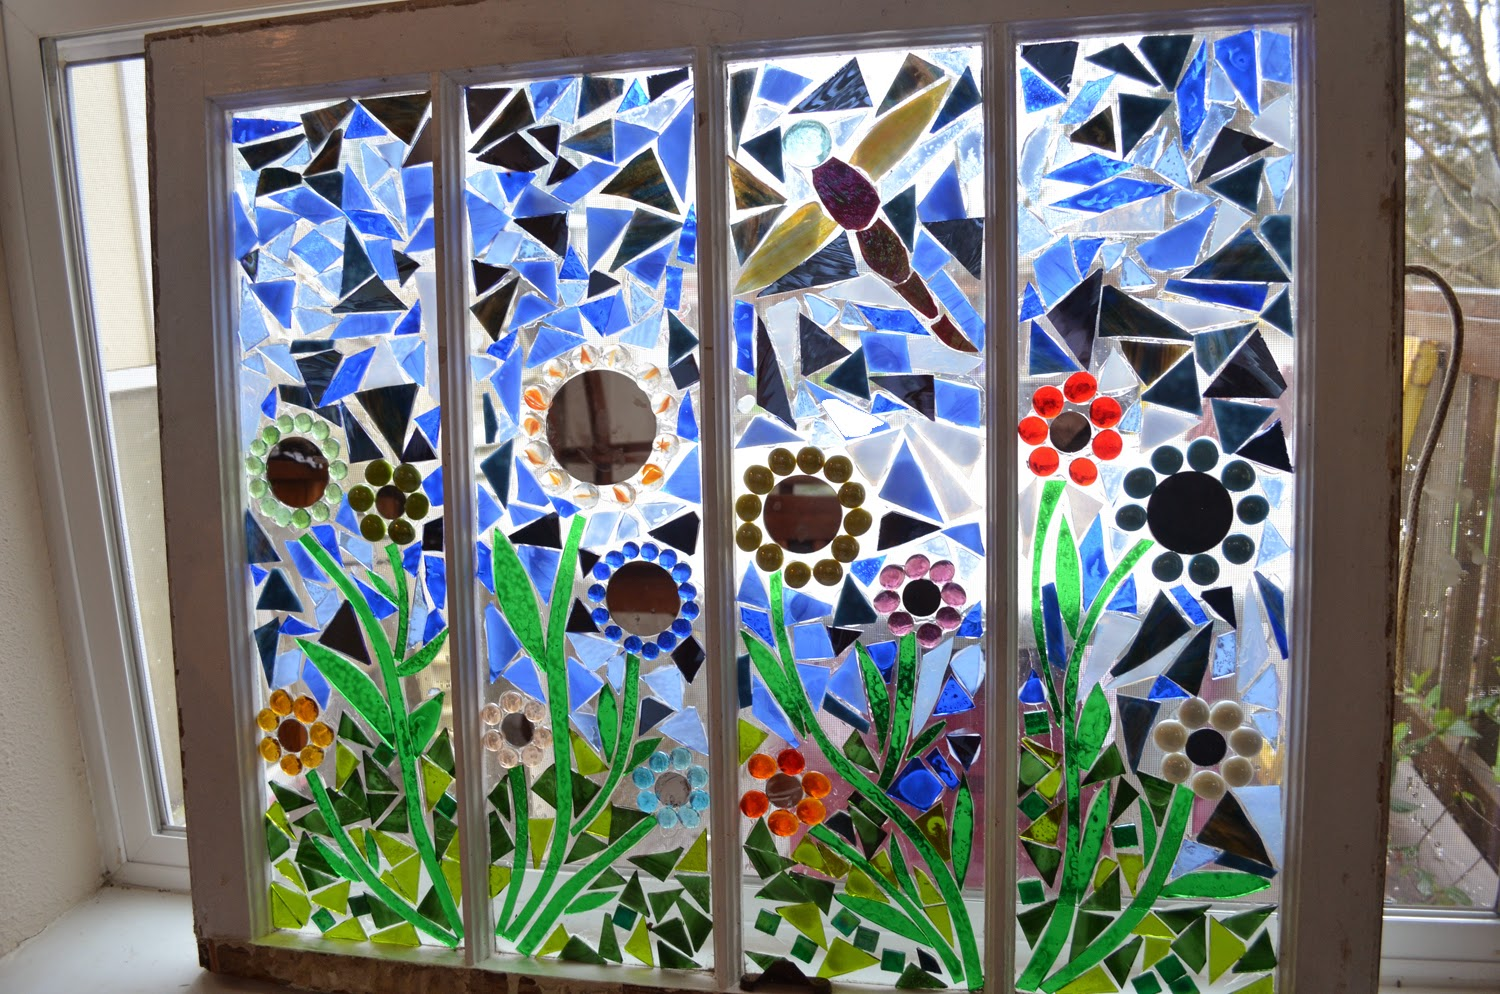 Make Mosaics With Stained Glass Patterns